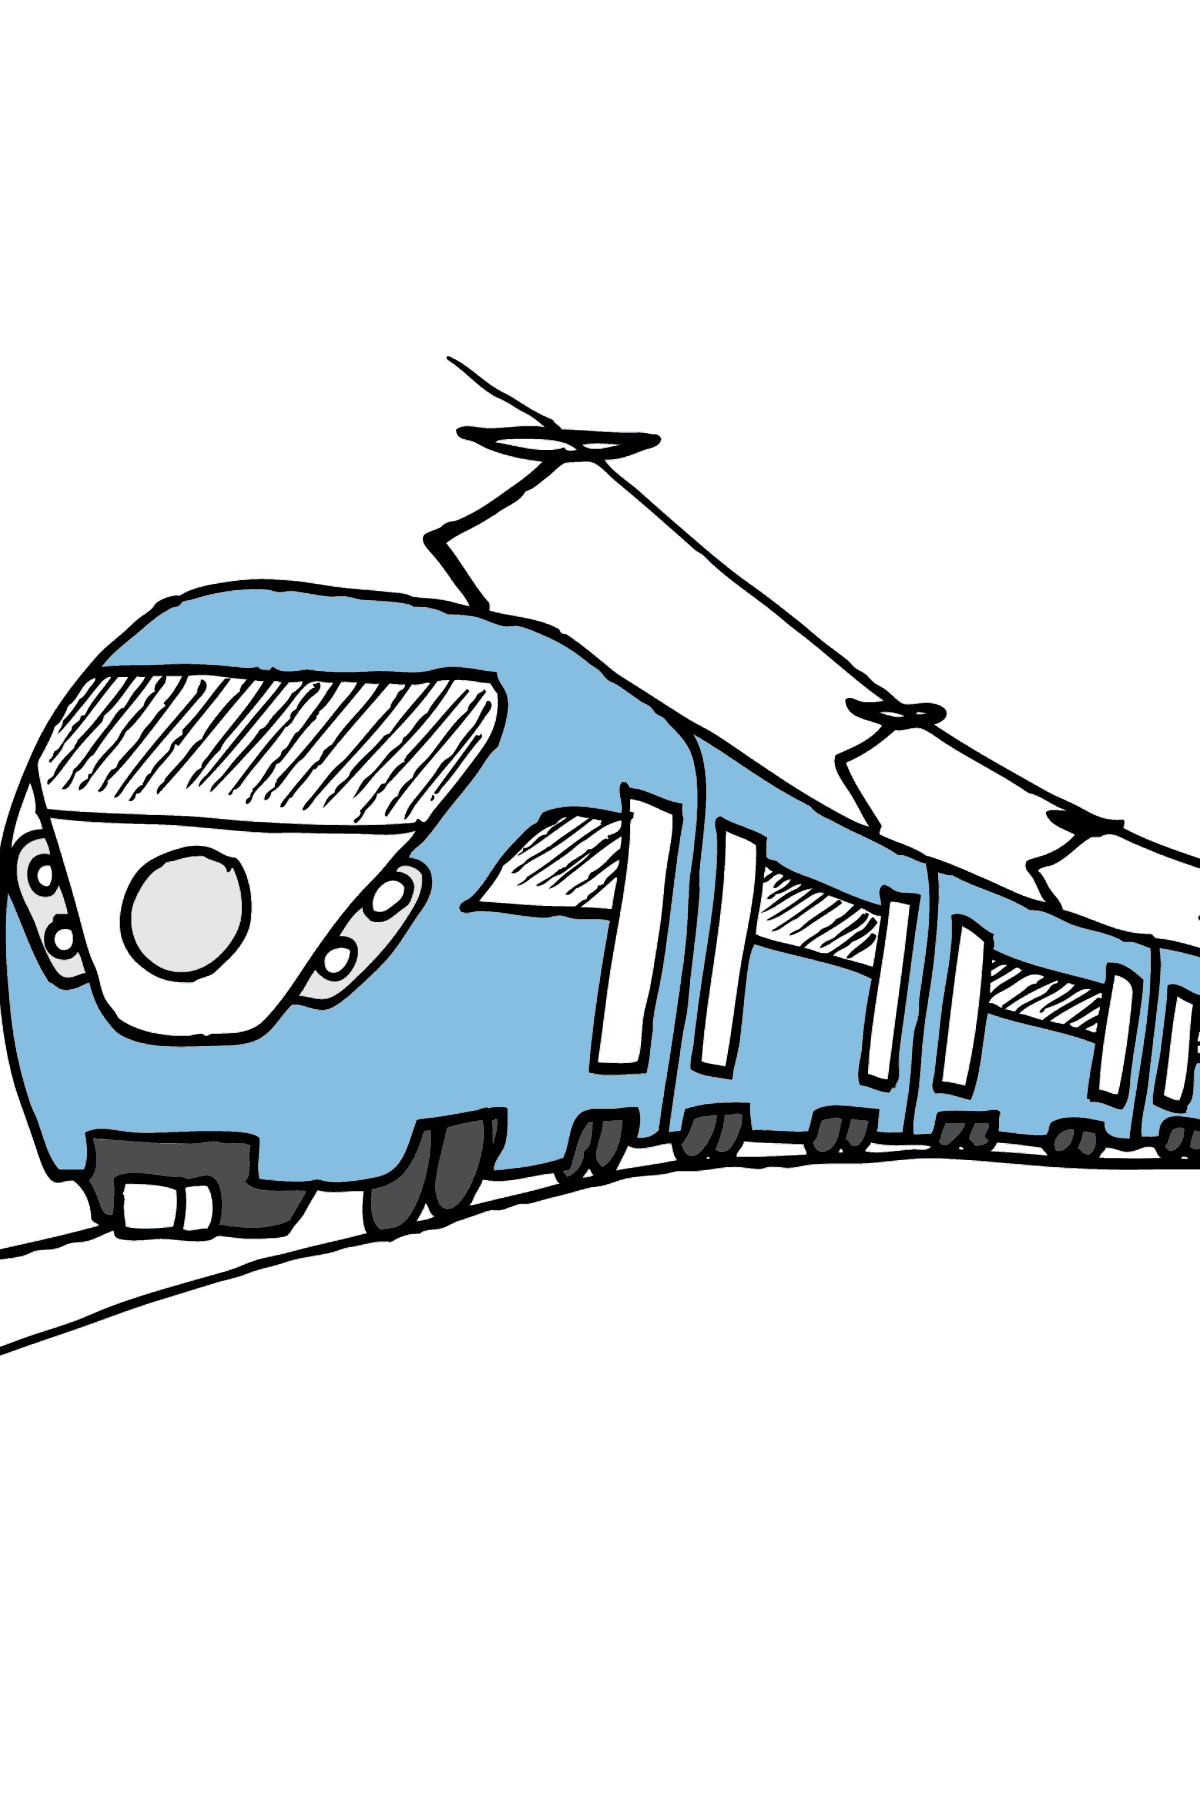 Coloring Page - A Passenger Train - Coloring Pages for Kids